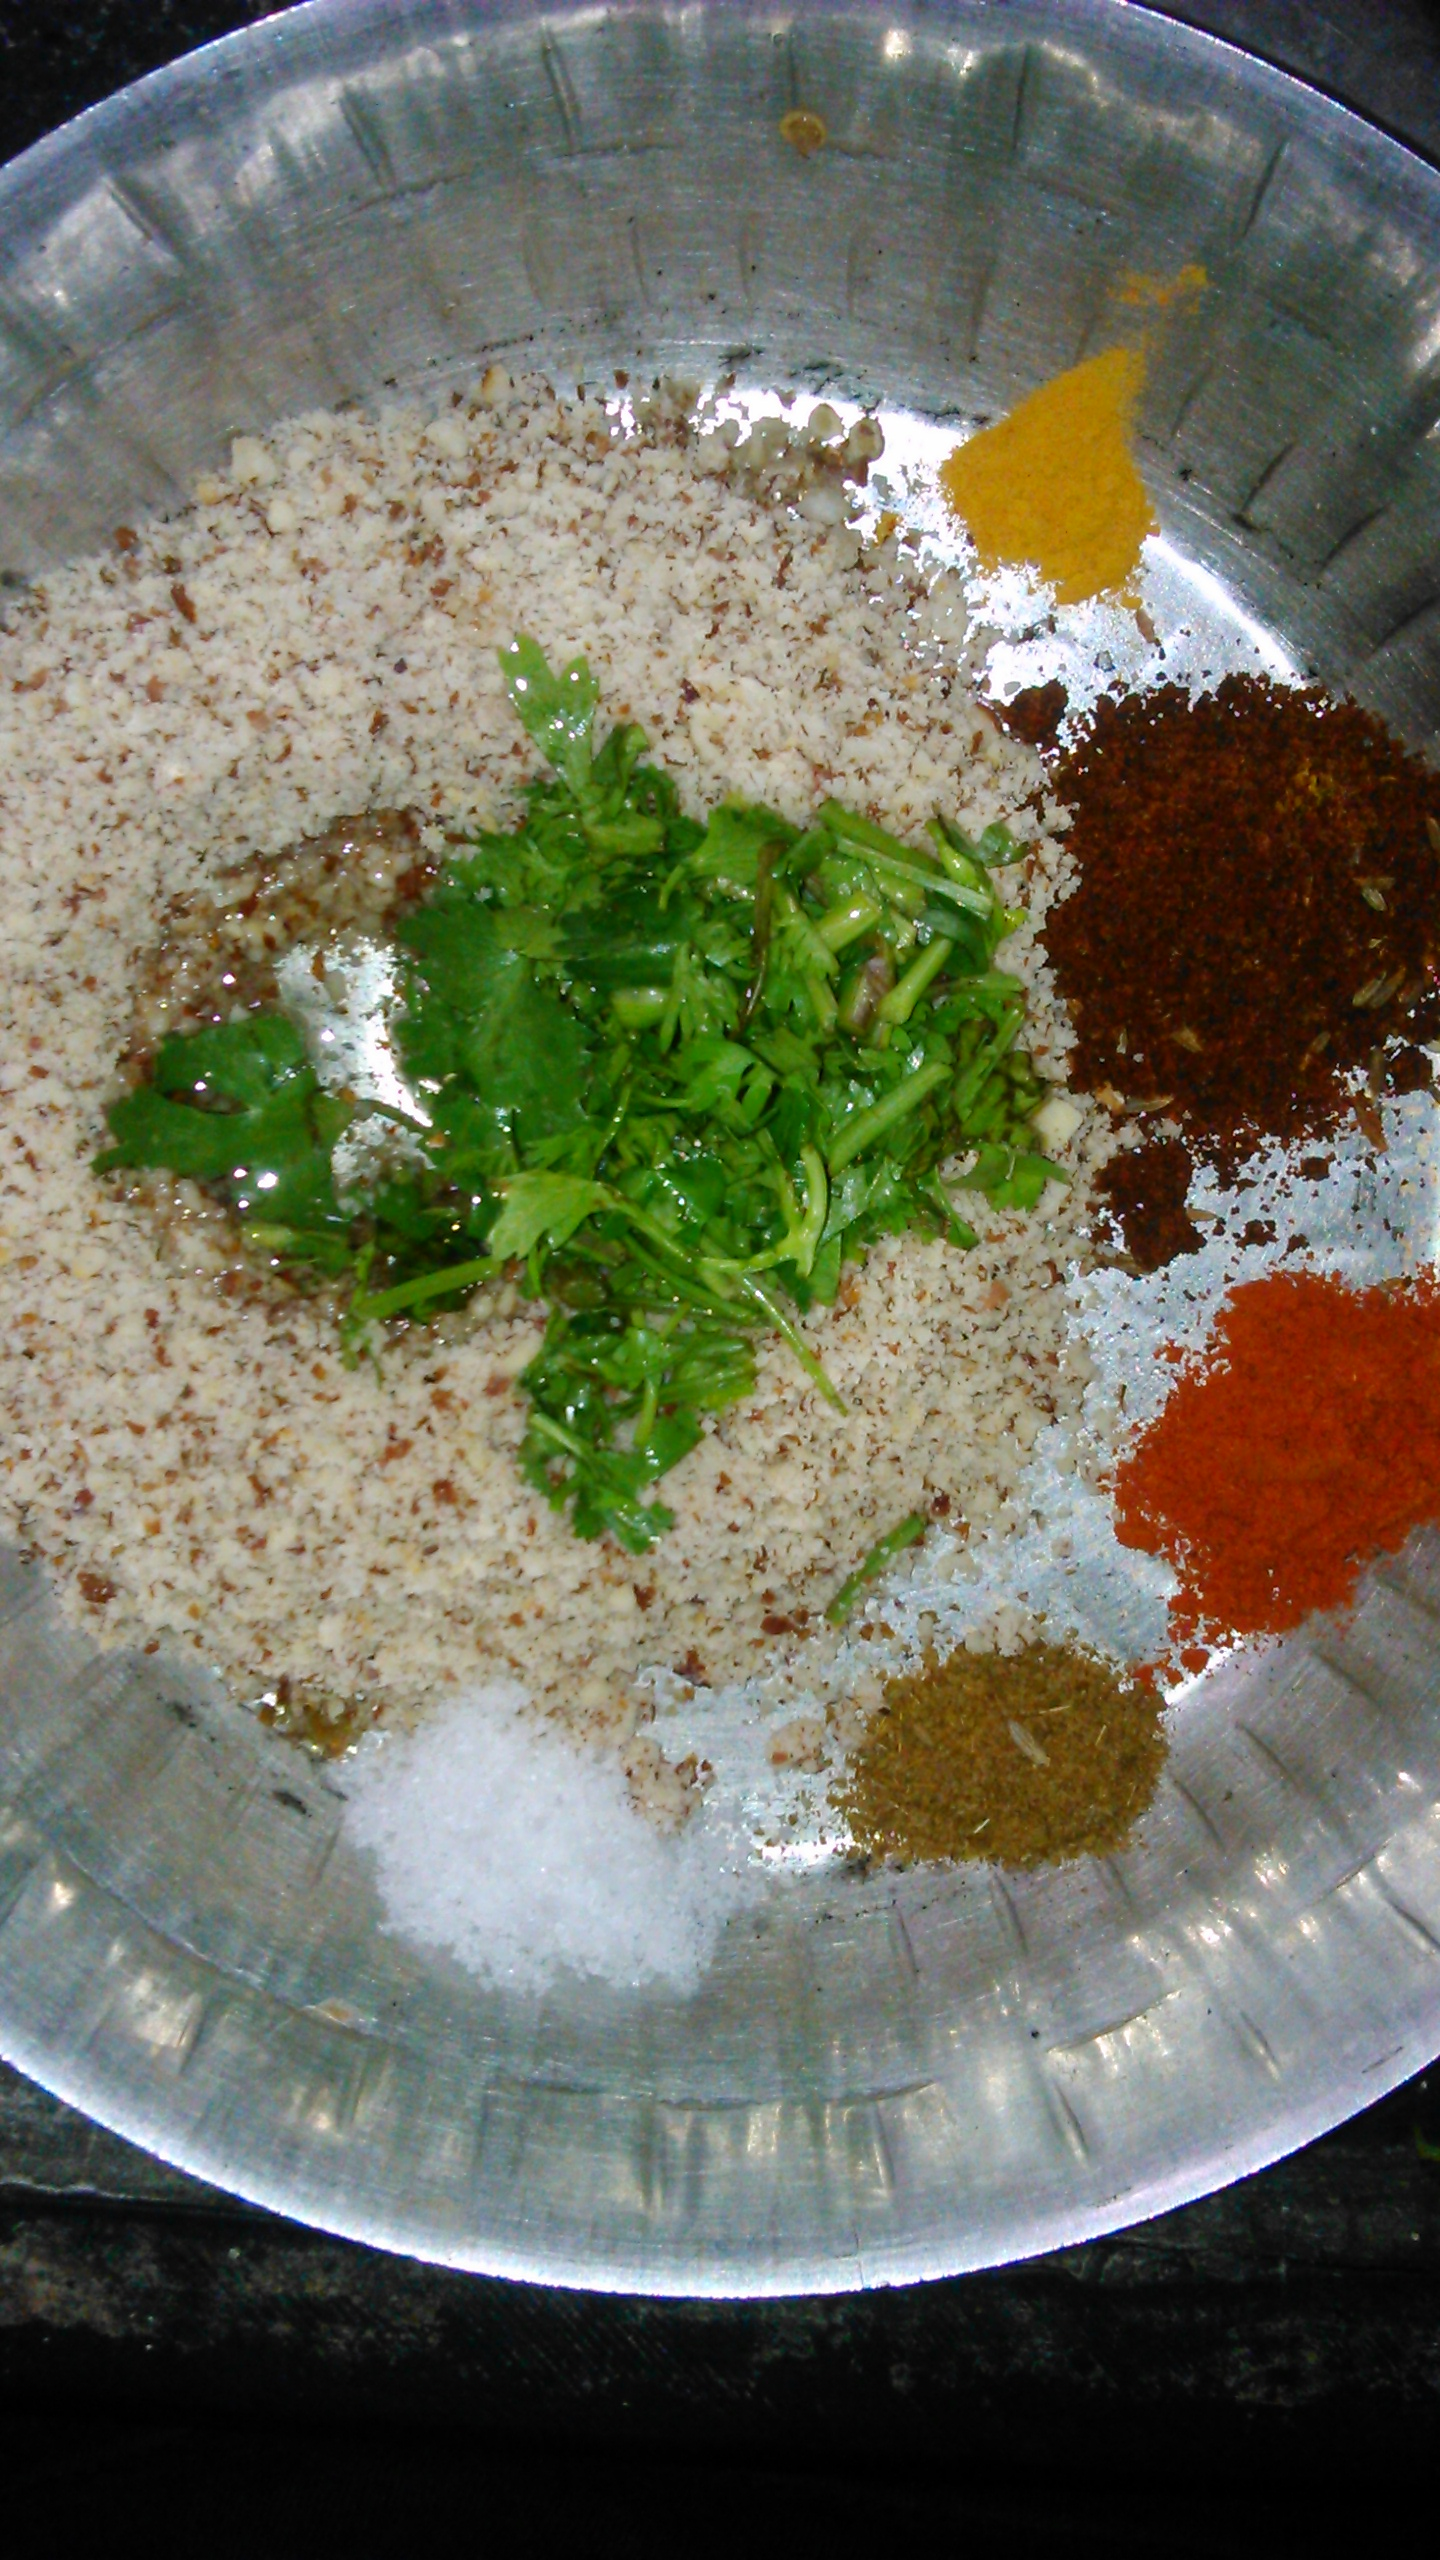 ingredients for capsicum subji/chhayaonline.com